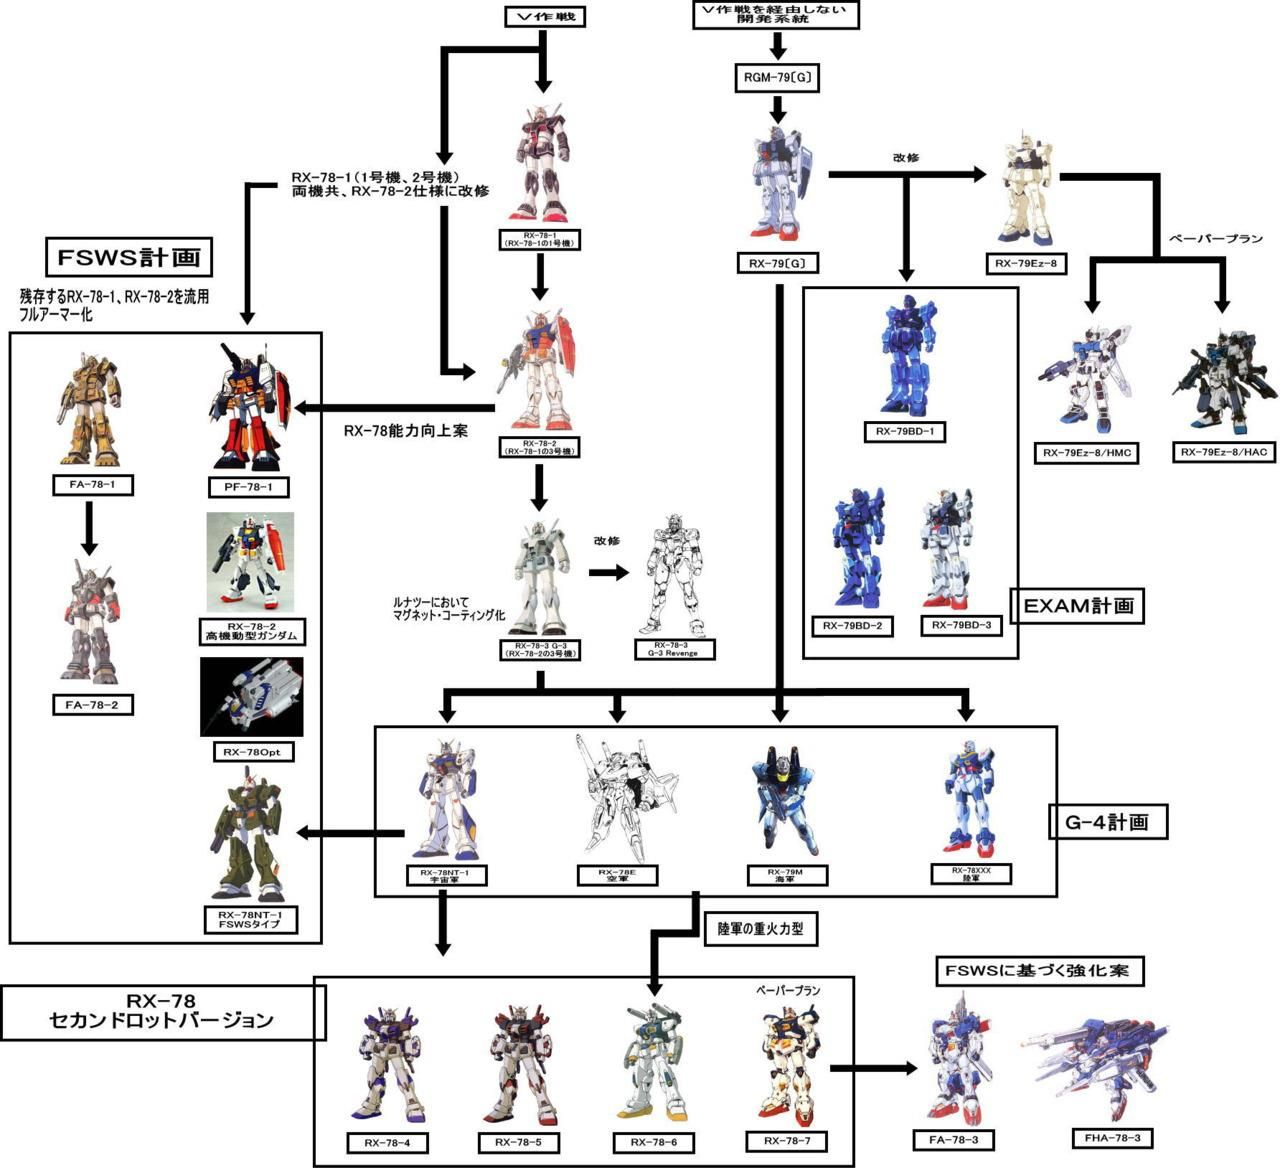 Tree Diagram Game Marine Battery Charger Wiring Mobile Suit Gundam The Games Pinterest